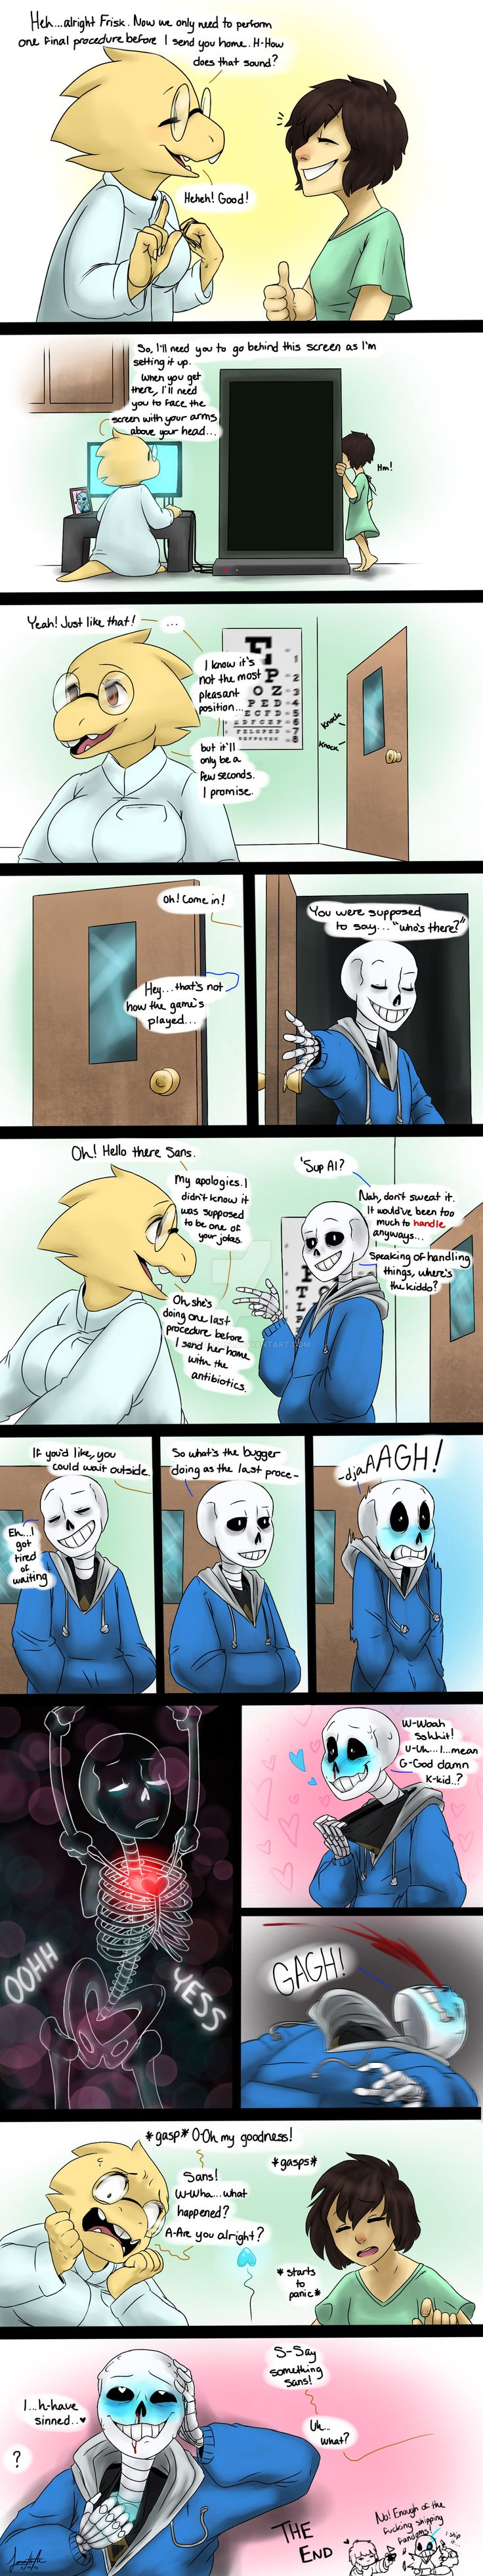 Doctor's Check Up: Undertale by http://animorphs1.deviantart.com/